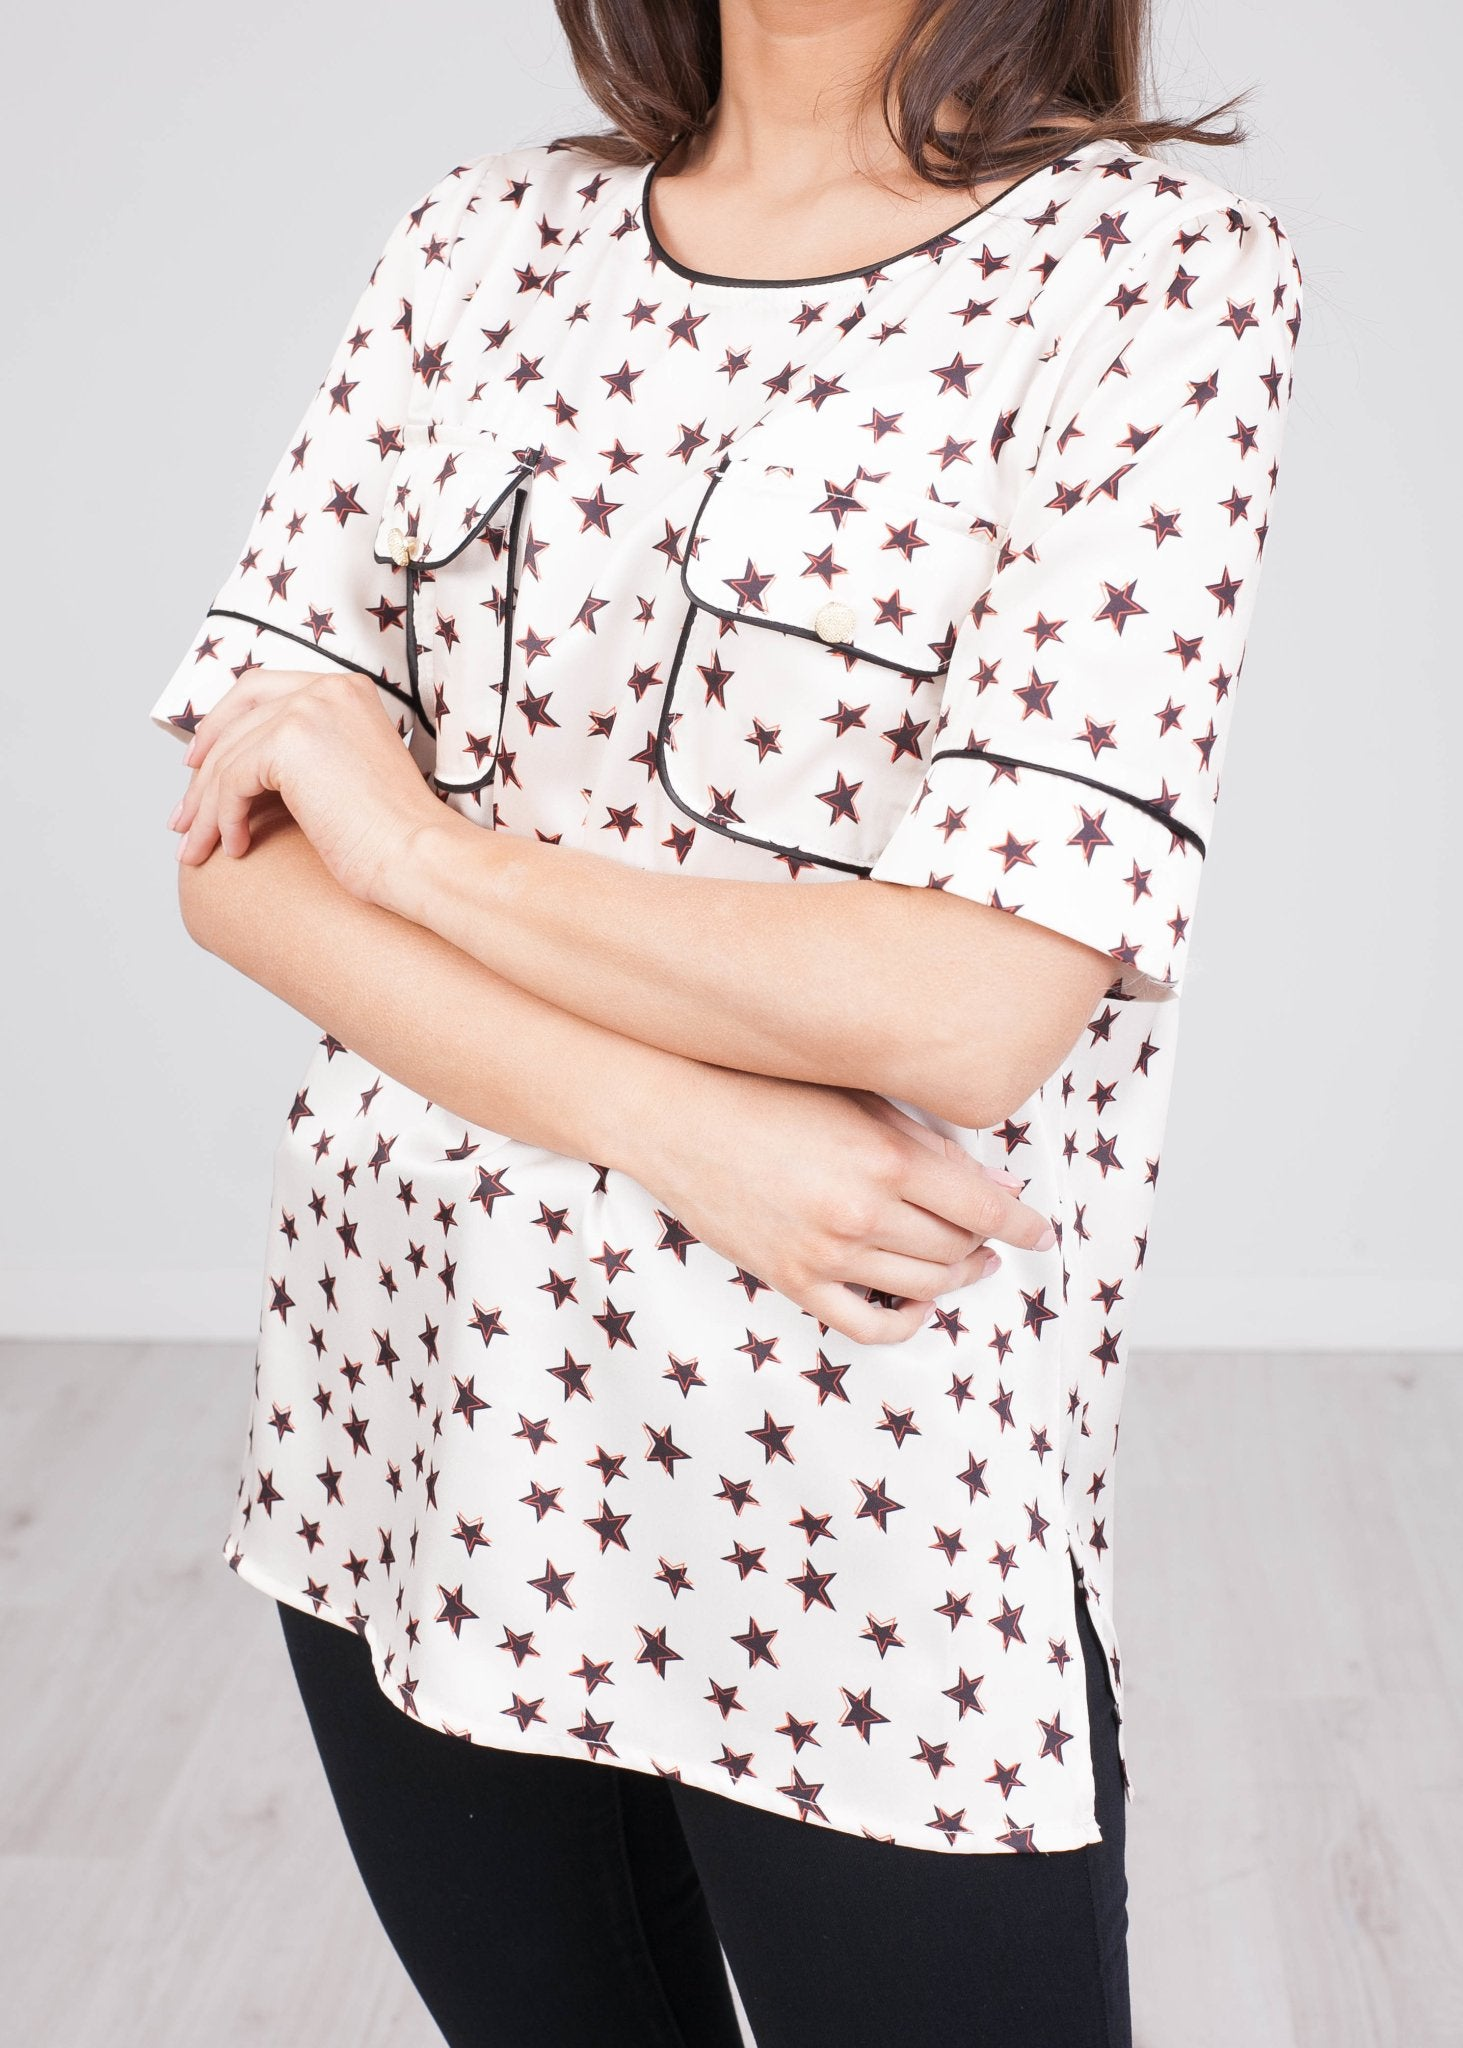 Rita Star Short Sleeve Top - The Walk in Wardrobe